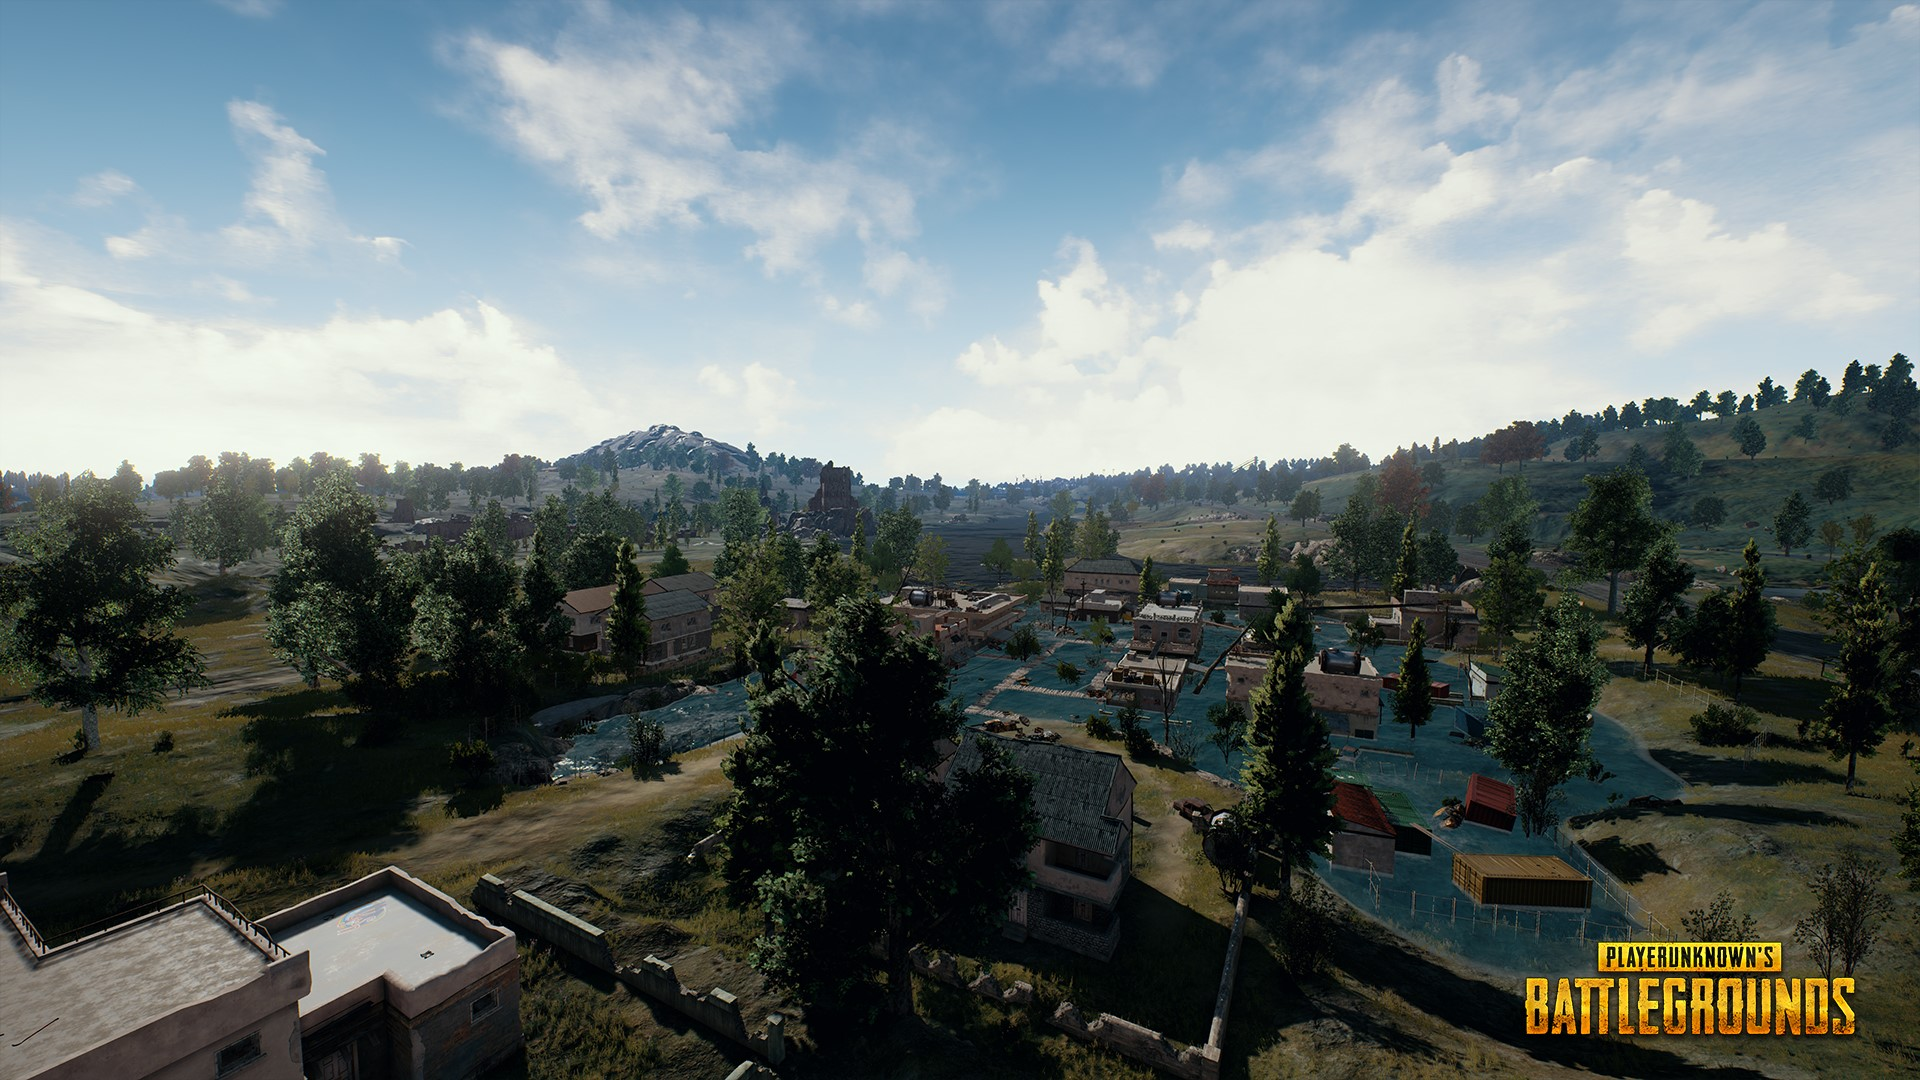 Playerunknown's Battlegrounds town